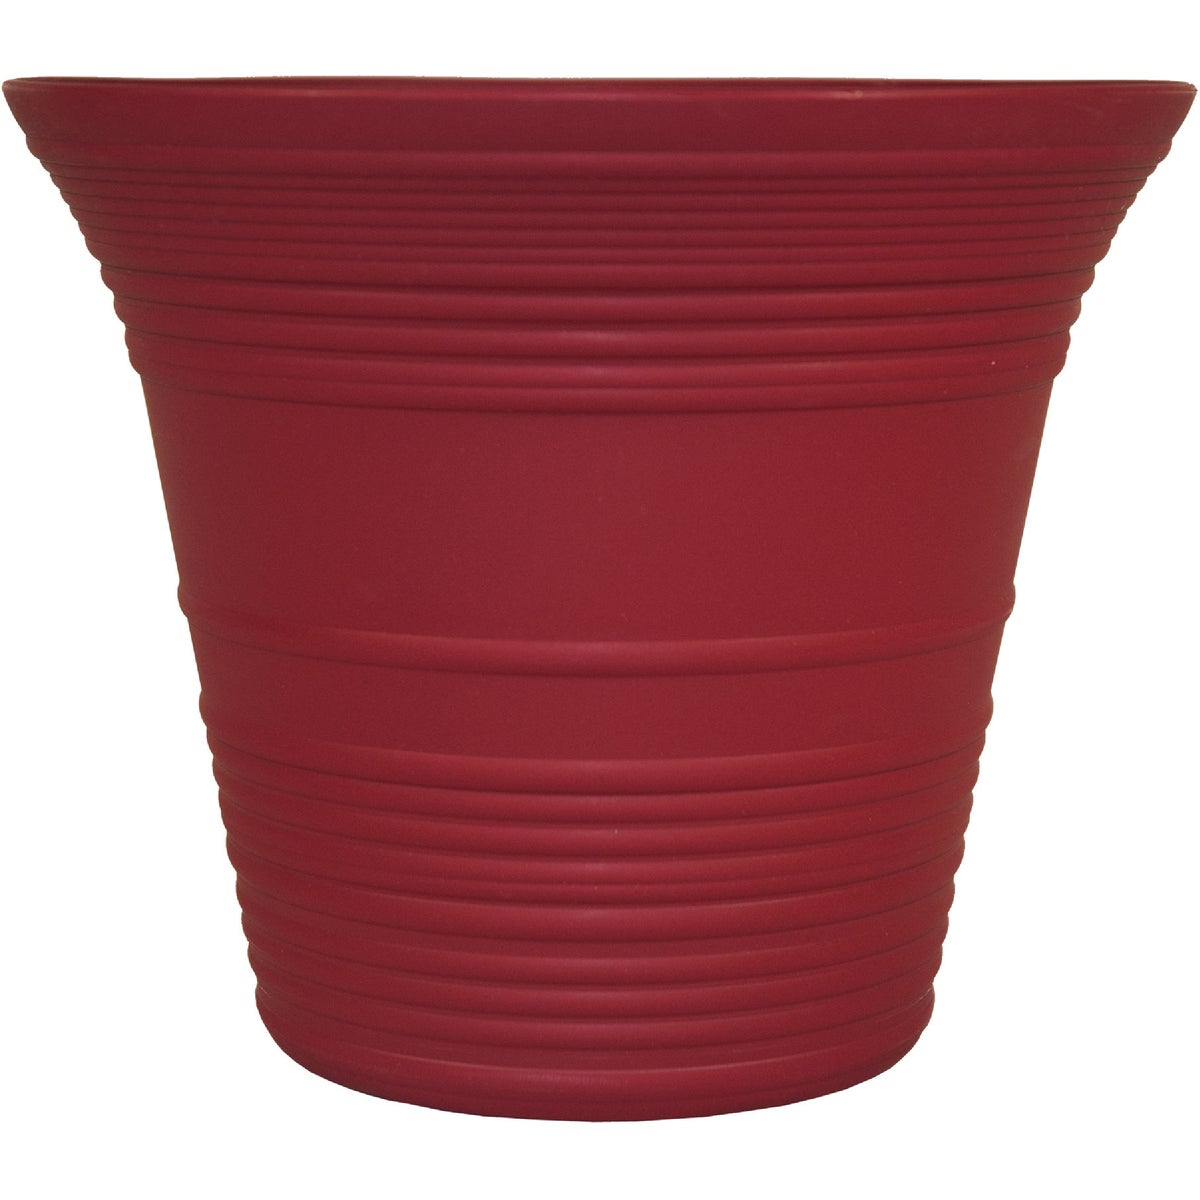 "7"" RED SEDONA PLNTER - SEA07001F85 by Myers Industries Inc"